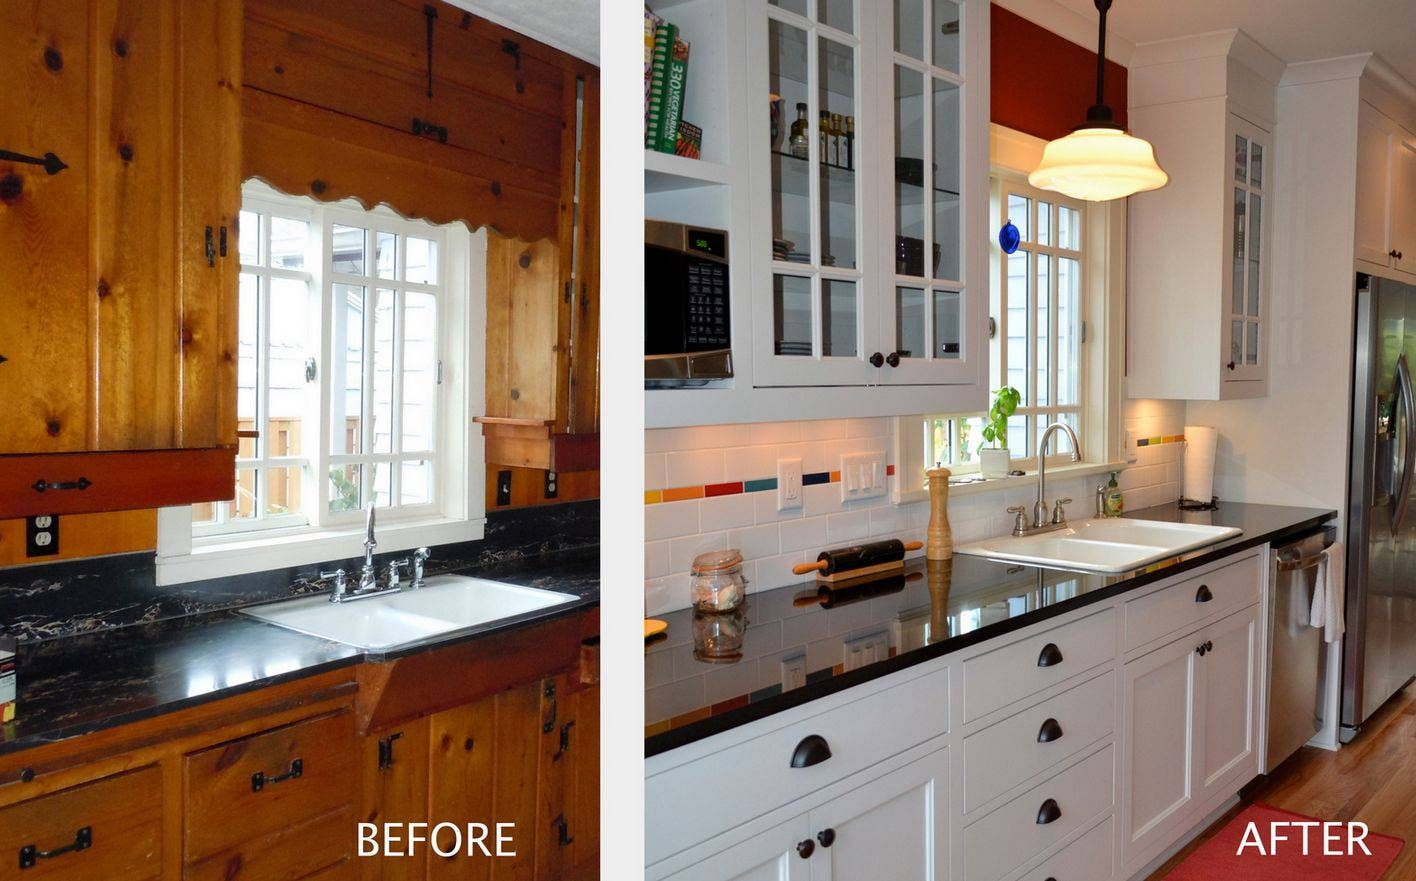 Best Kitchen Gallery: Be Inspired For The Next Project With Before After Kitchen of Knotty Pine Kitchen Remodel on rachelxblog.com